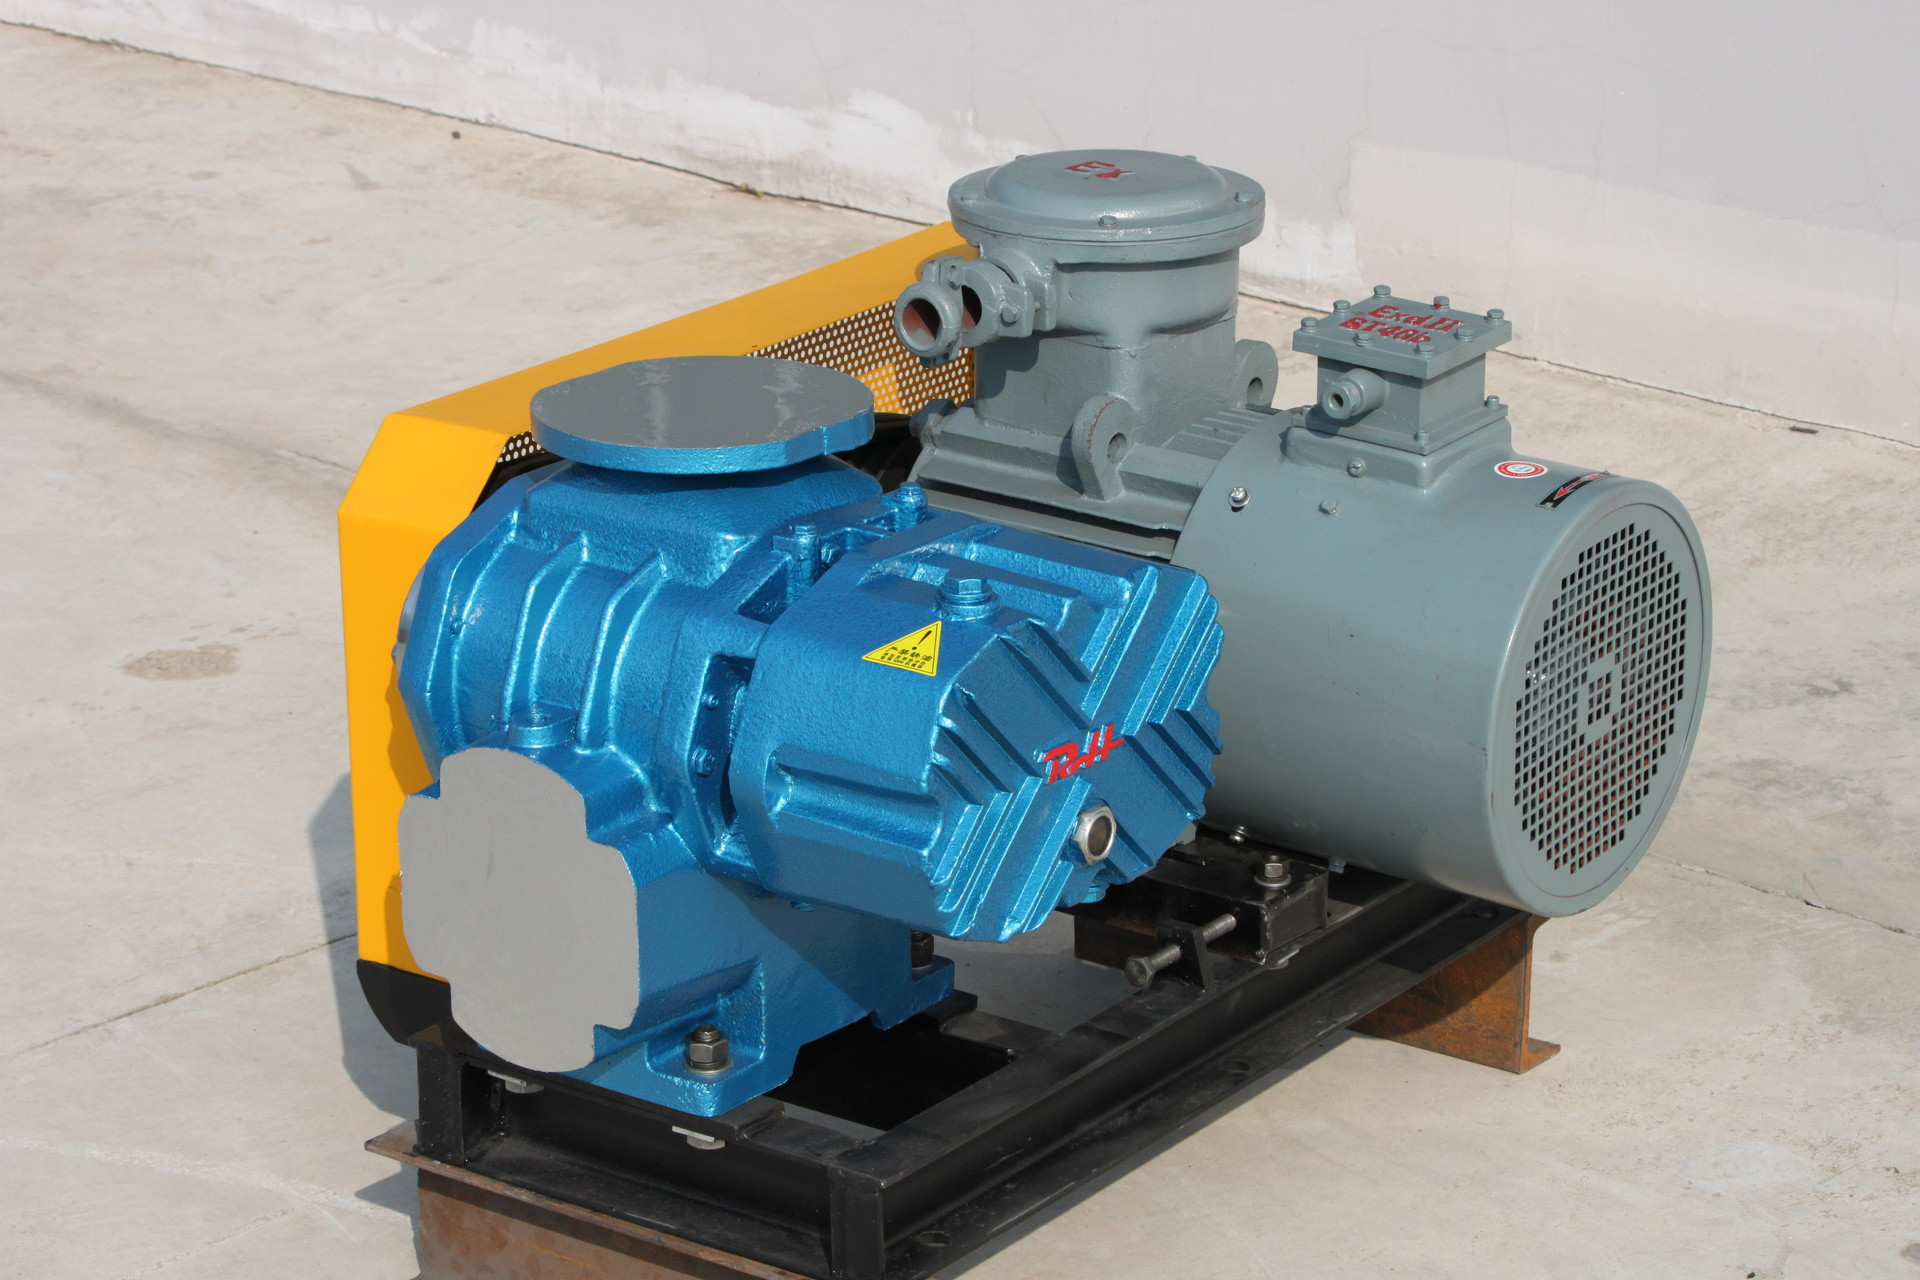 nantong rongheng positive displacement blower